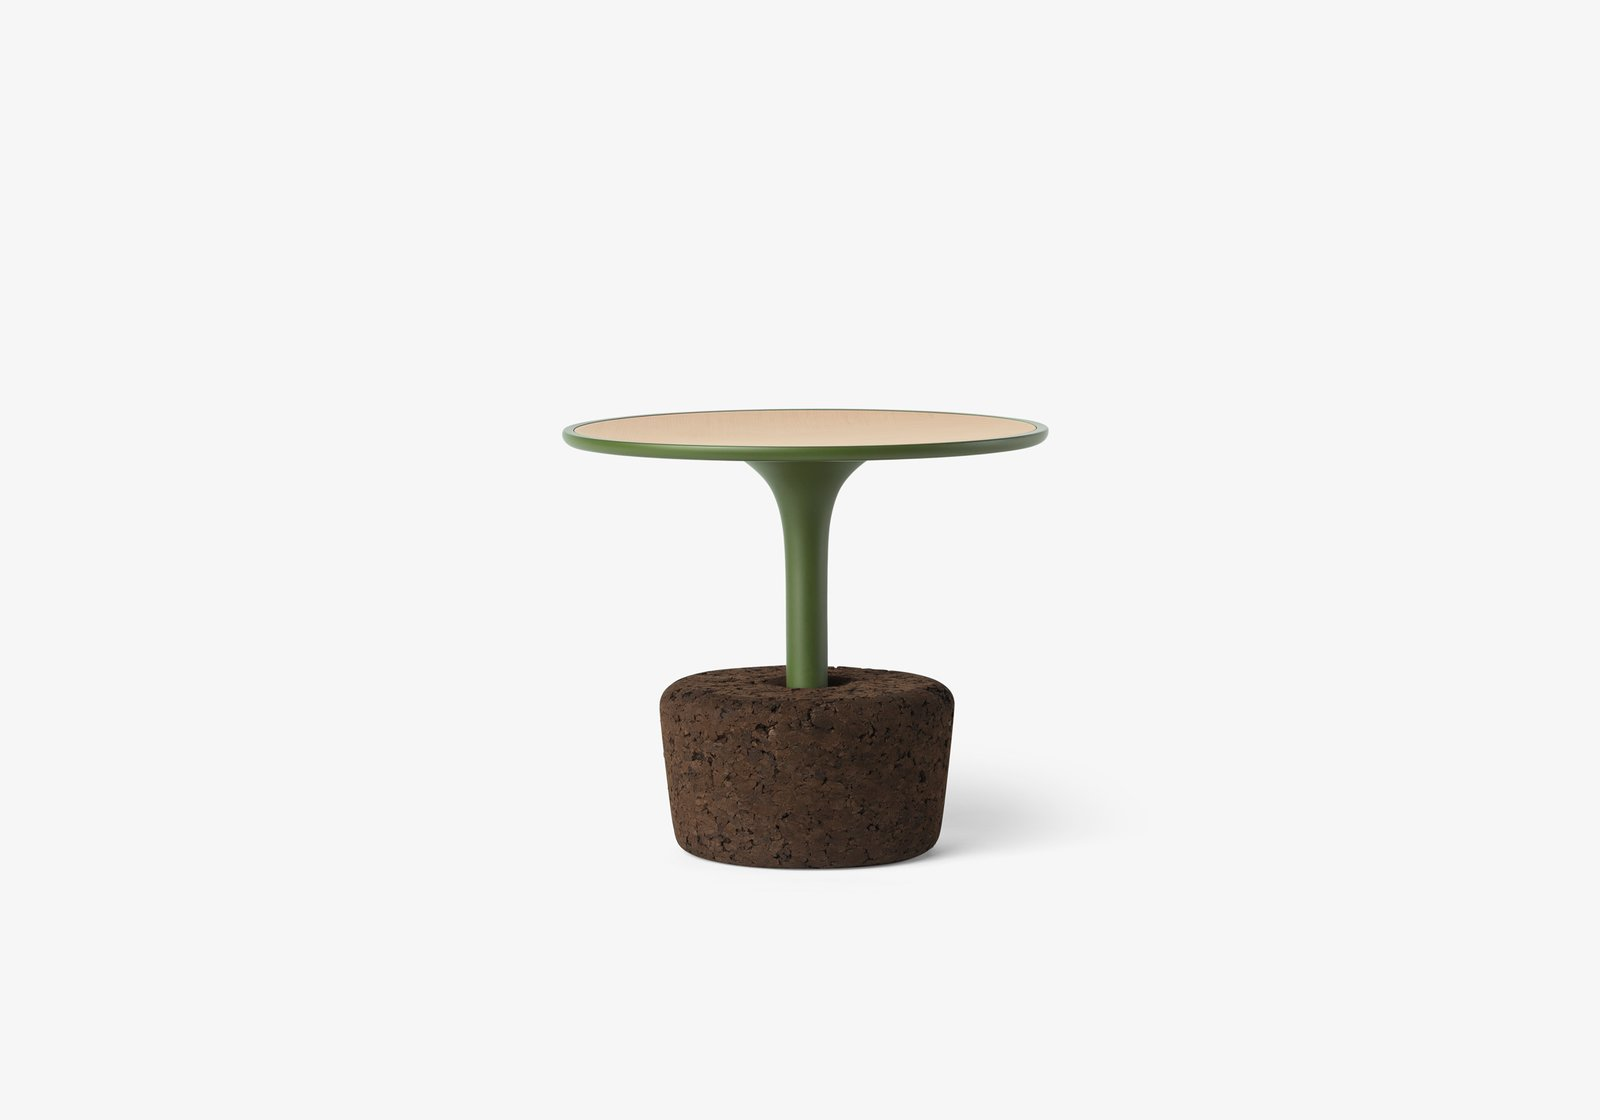 "Flora Small Low  FLORA is a set of coffee tables that refers to the plants we offer to the ones we love, so there is a similarity between taking care of plants and taking care of the objects. These versatile tables combine natural materials, with four sizes and six different colored frame finishes and may be used separately or together.  Size  Ø40 x H35 cm / Ø15,7'' x H14''.  Weight  4,3 kg / 9,5 lbs.   Search ""여의도출장안마[Ø1Ø_6445_9663]→【콜걸미녀】여의도출장마사지 여의도출장아가씨콜걸Ⅳ여의도출장안마호텔【S급미녀girl】 여의도출장안마후불제 여의도출장안마야한곳㎚여의도출장샵코스 여의도출장맛사지레전드 여의도출장안마역대급Δ여의도출장1등업소"" from Floras"